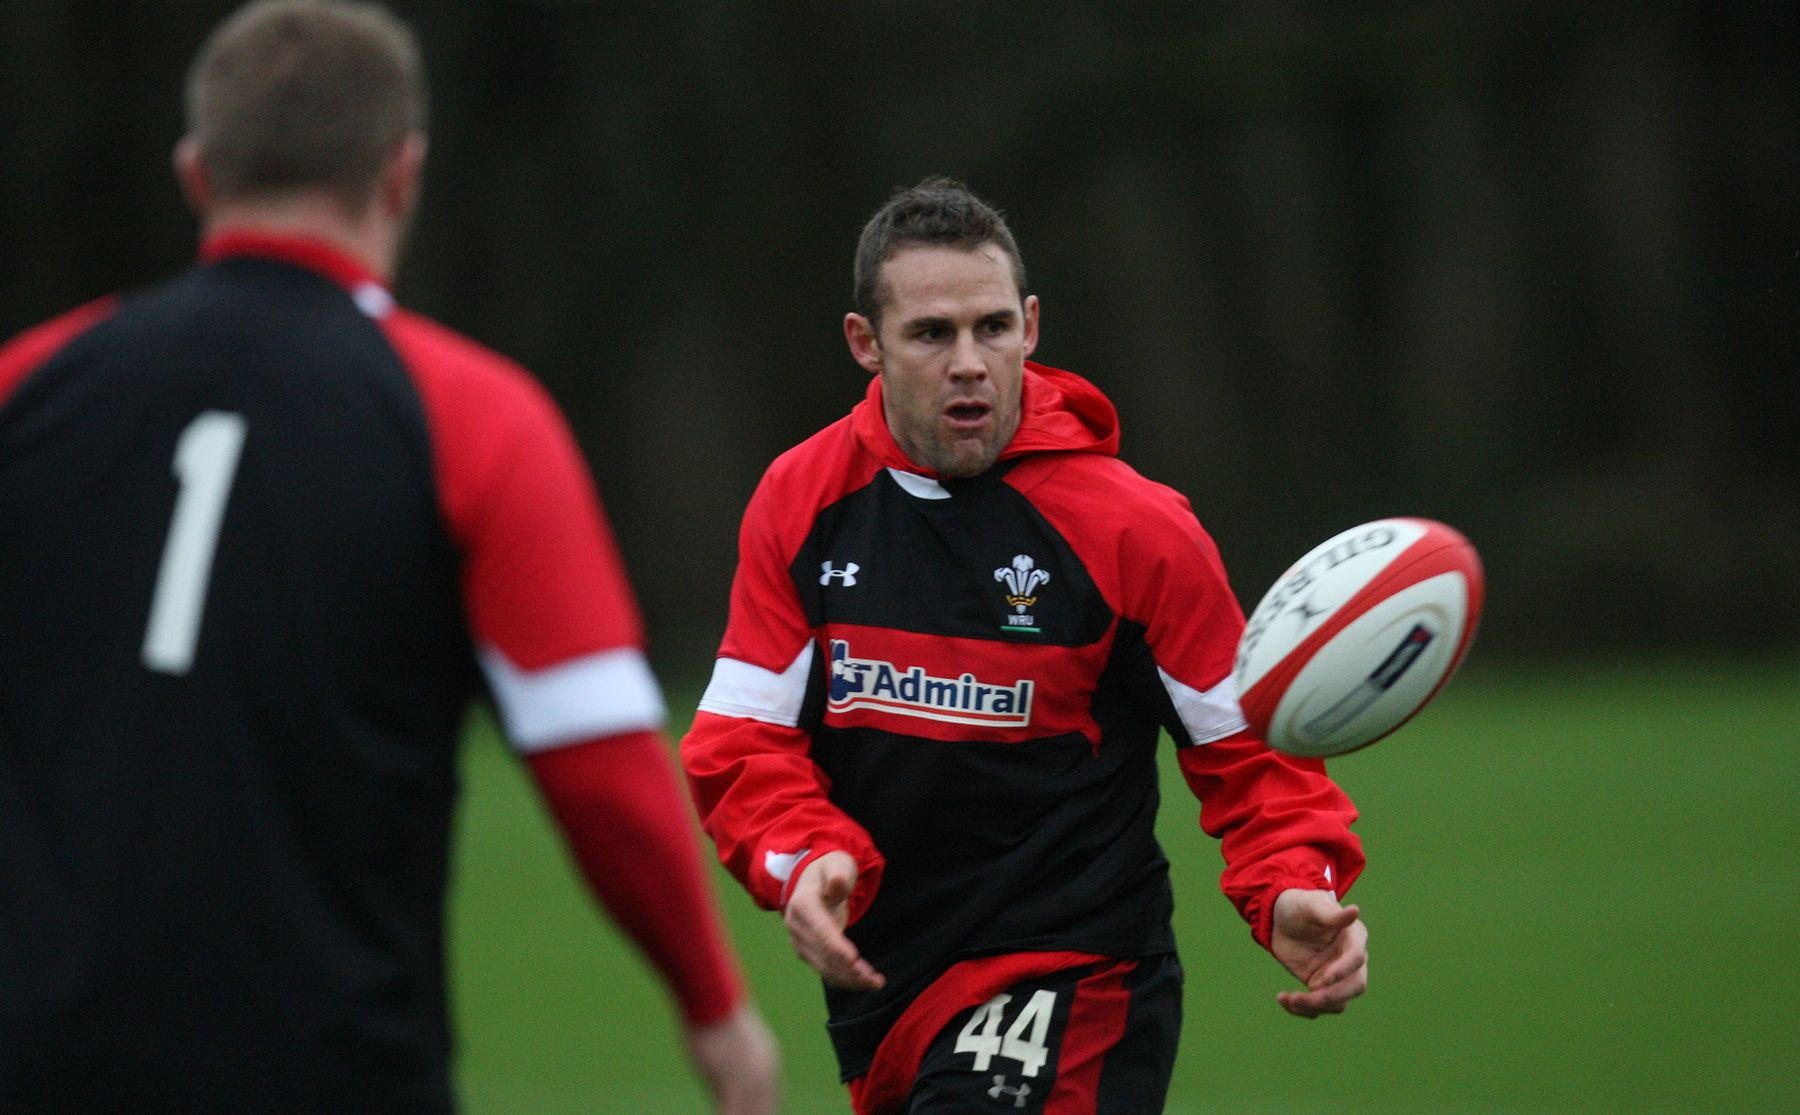 Byrne handed captain's arm-band